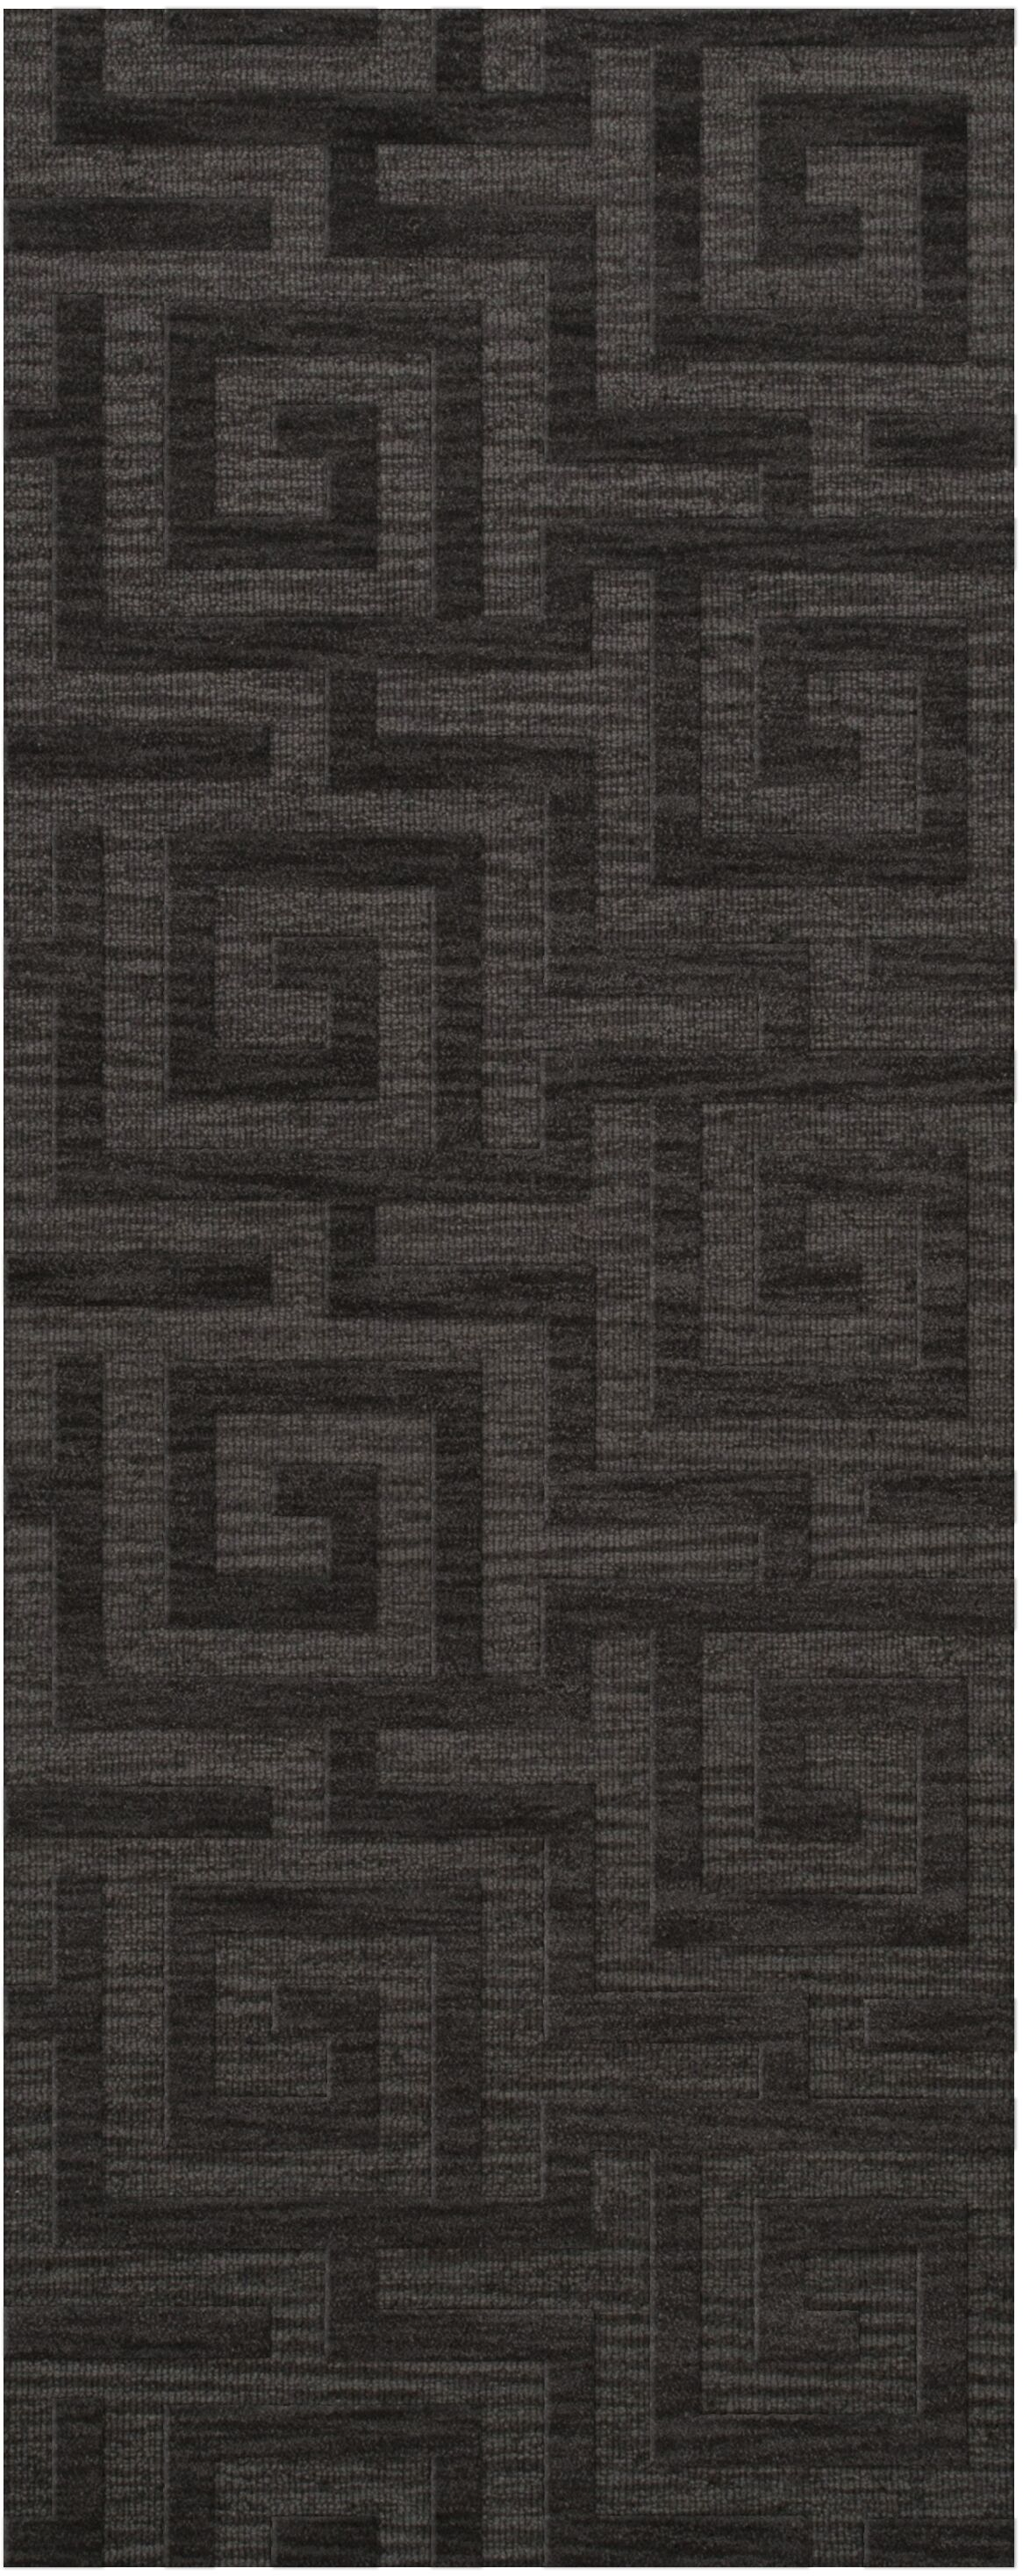 Dover Tufted Wool Ash Area Rug Rug Size: Runner 2'6